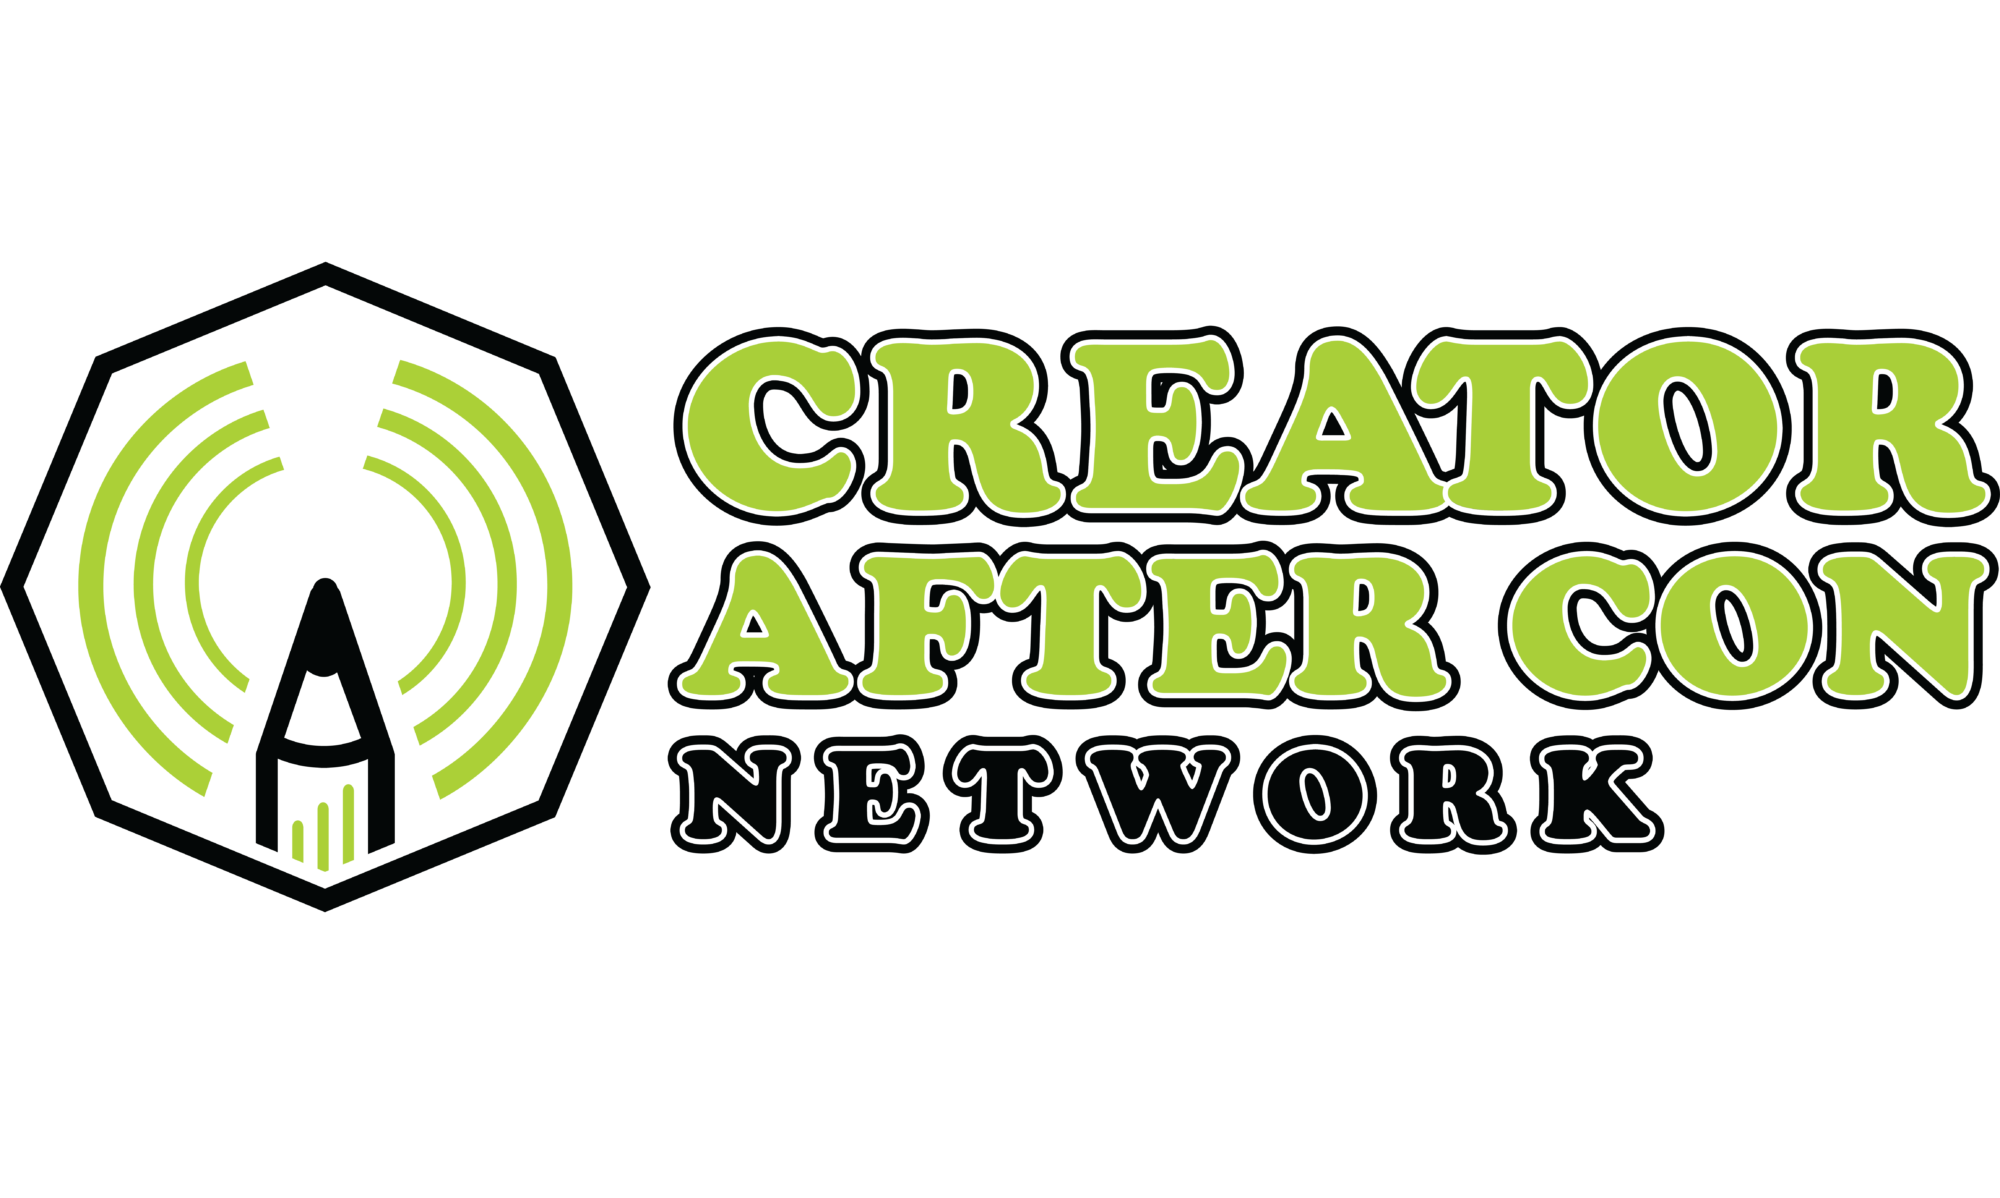 Creater After Con Network